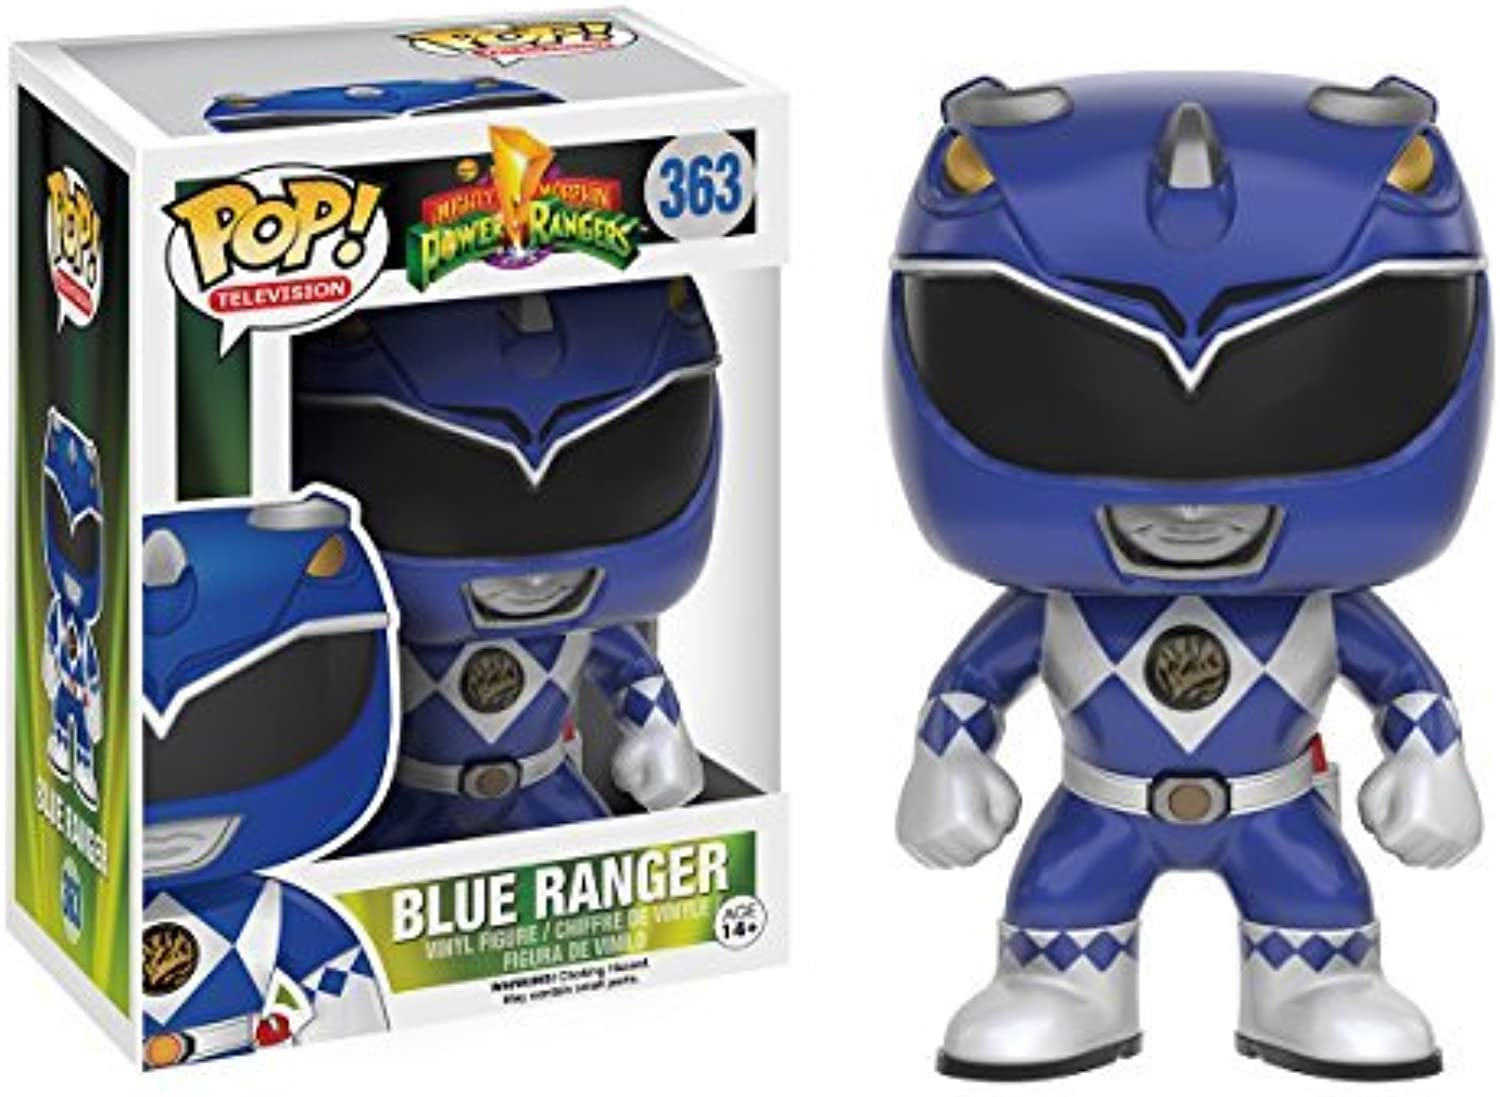 divertimentoko POP TV  energia Rangers - blu Ranger azione cifra by divertimentoKo